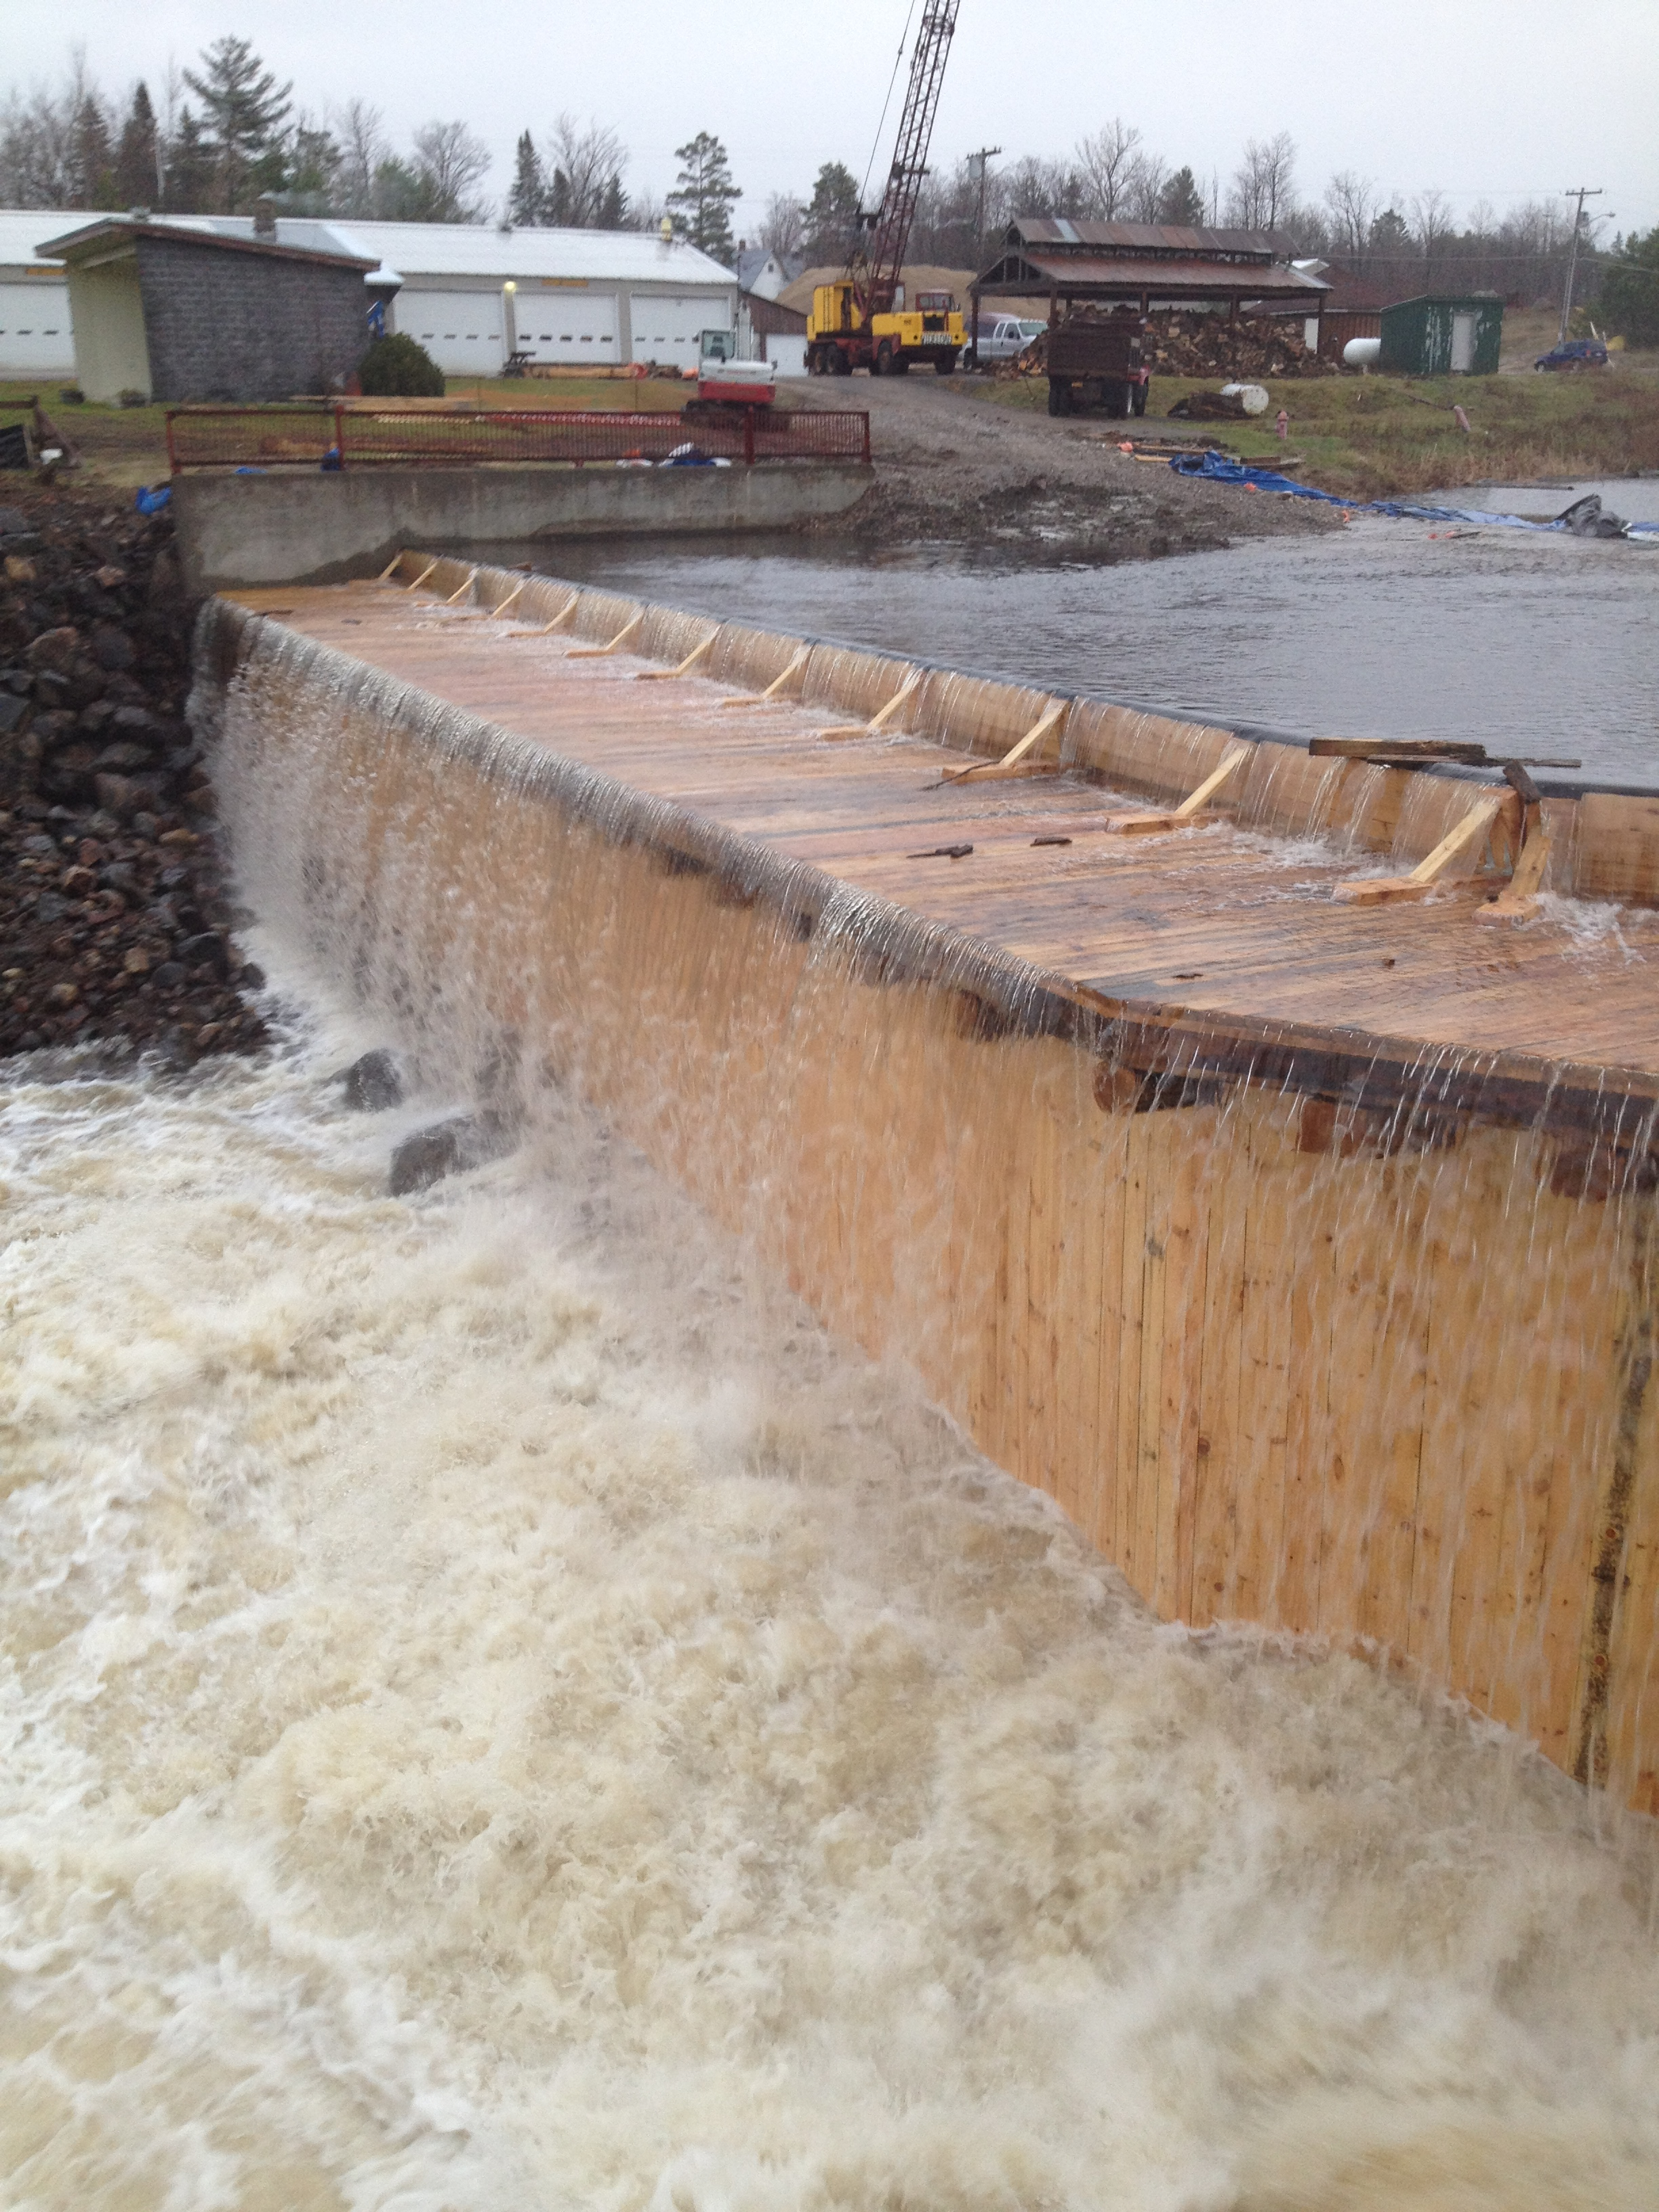 Water spills over the completed dam for the first time.